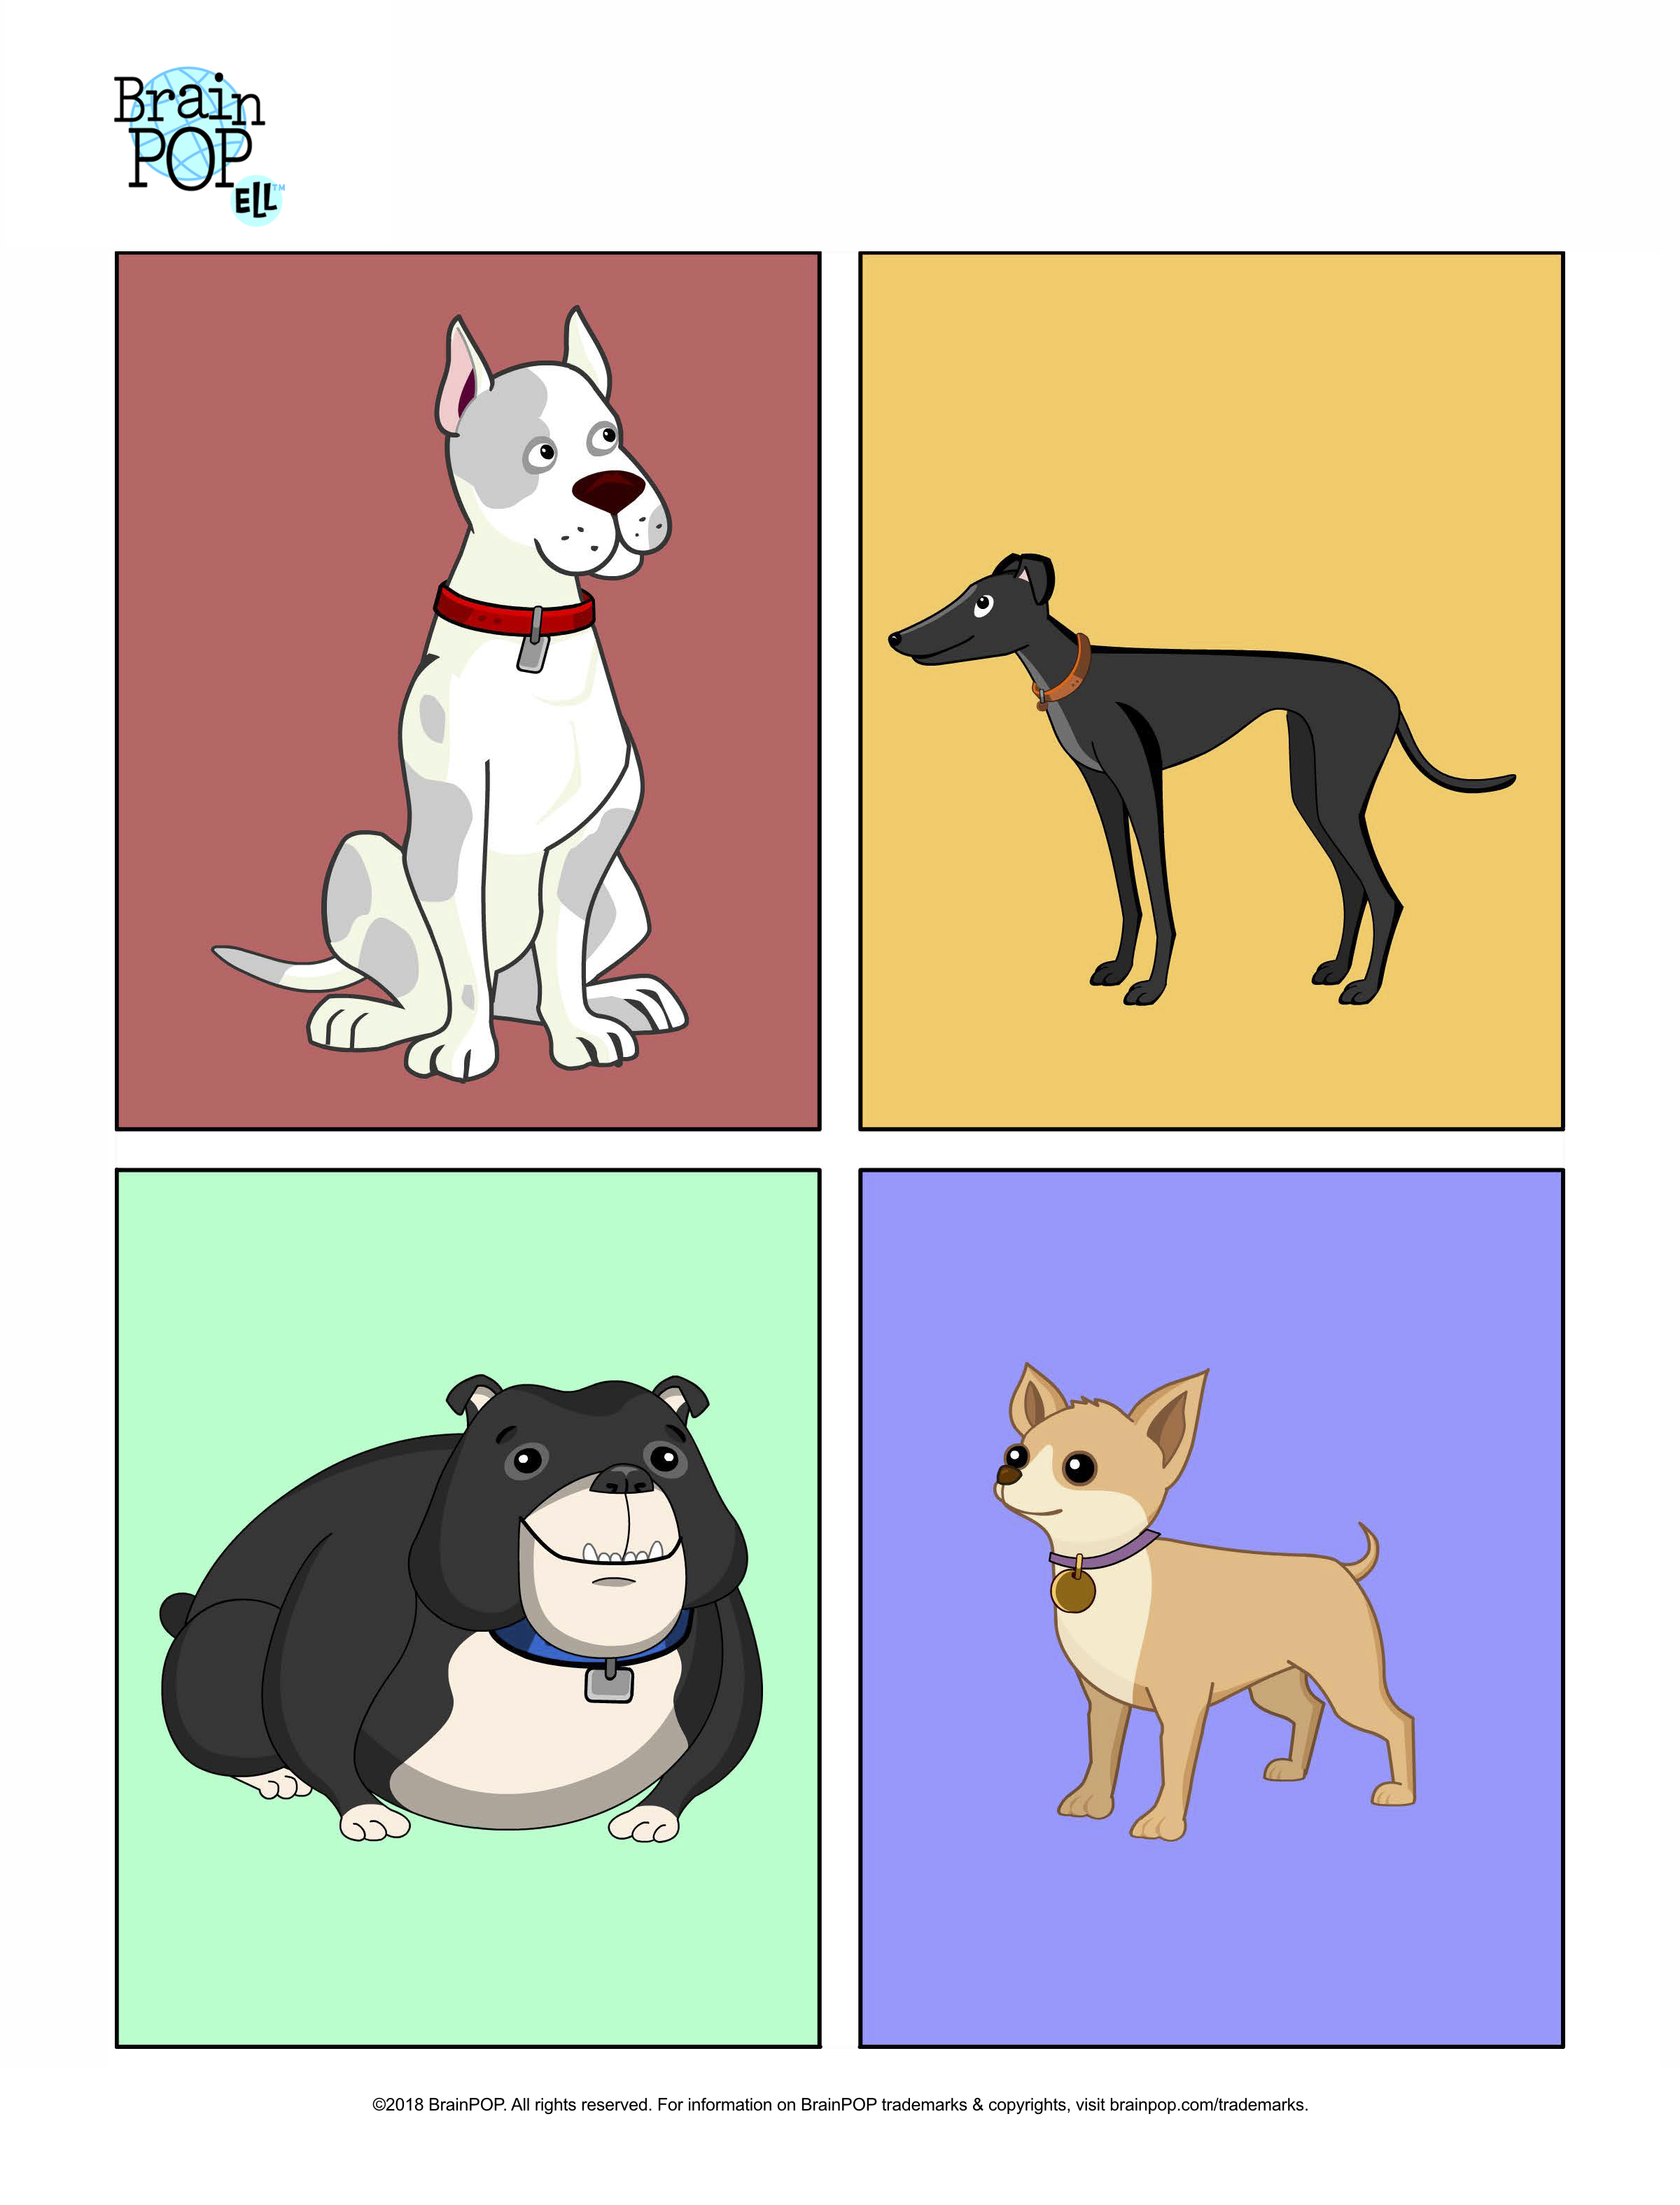 Four Dogs Image Prompt